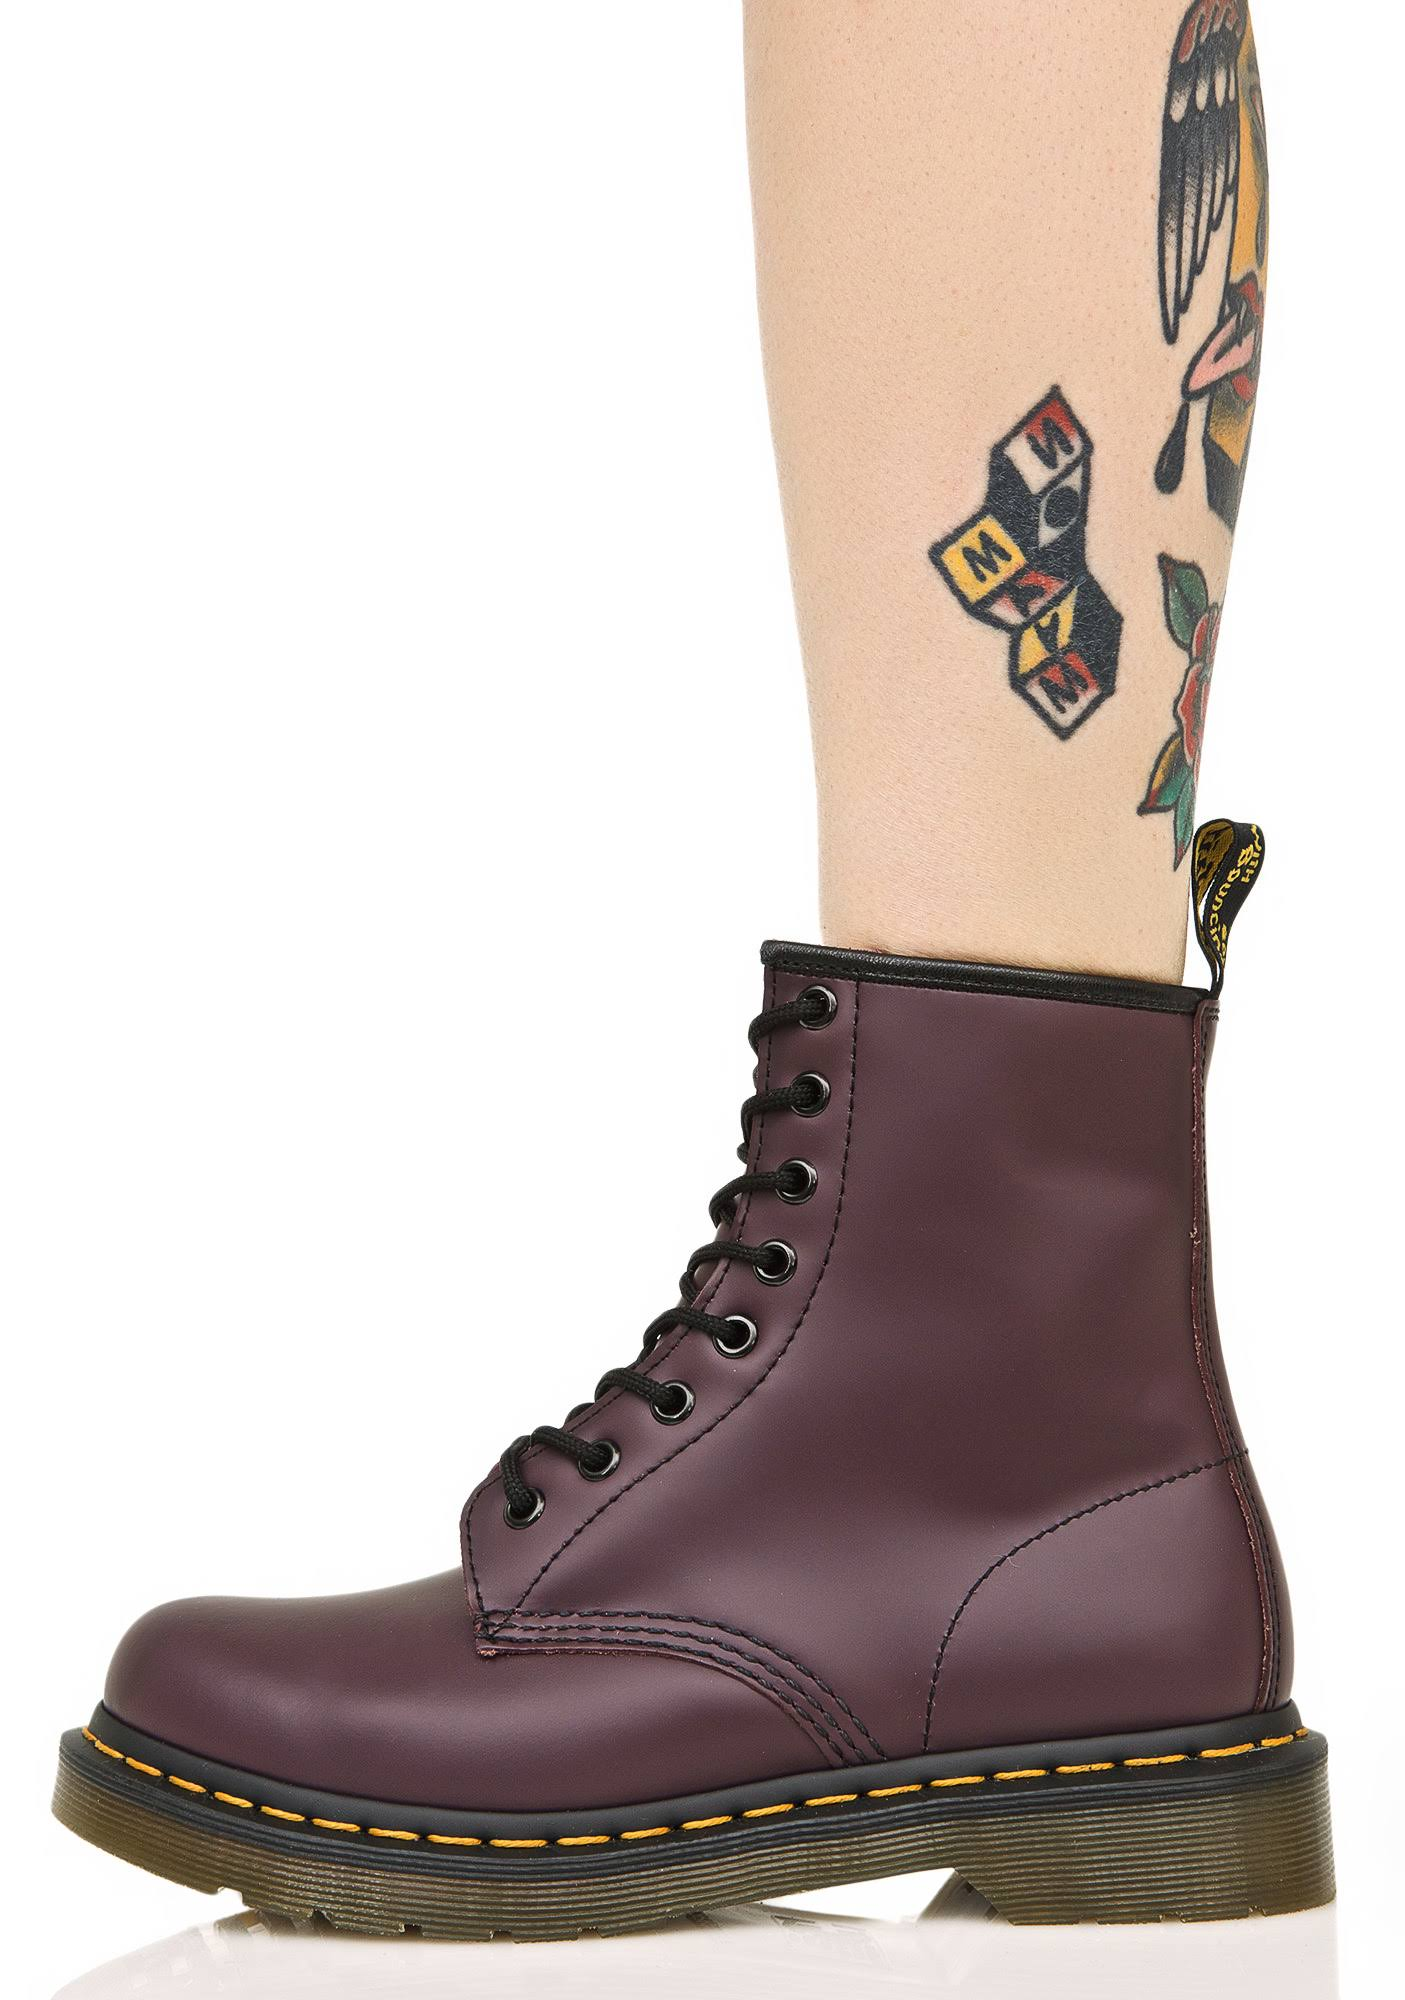 Royal 8 7 Purple DrMartens 1460 Ooglaarzen fbY76gy